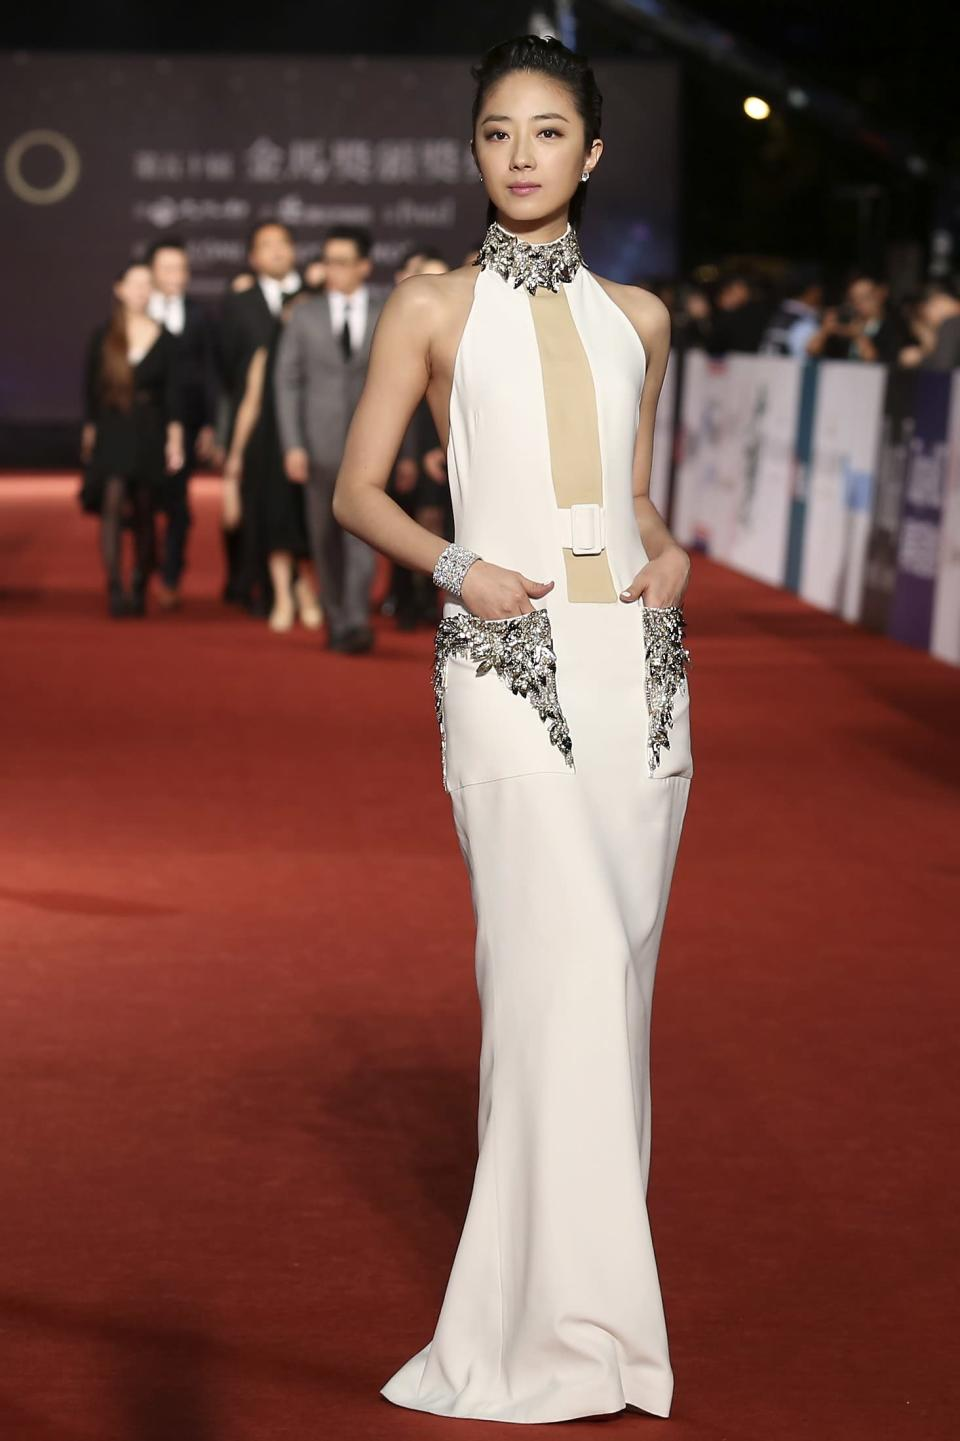 Taiwanese actress Gwei Lun-Mei poses for photographers on the red carpet at the 50th Golden Horse Film Awards in Taipei November 23, 2013. REUTERS/Patrick Lin (TAIWAN - Tags: ENTERTAINMENT)